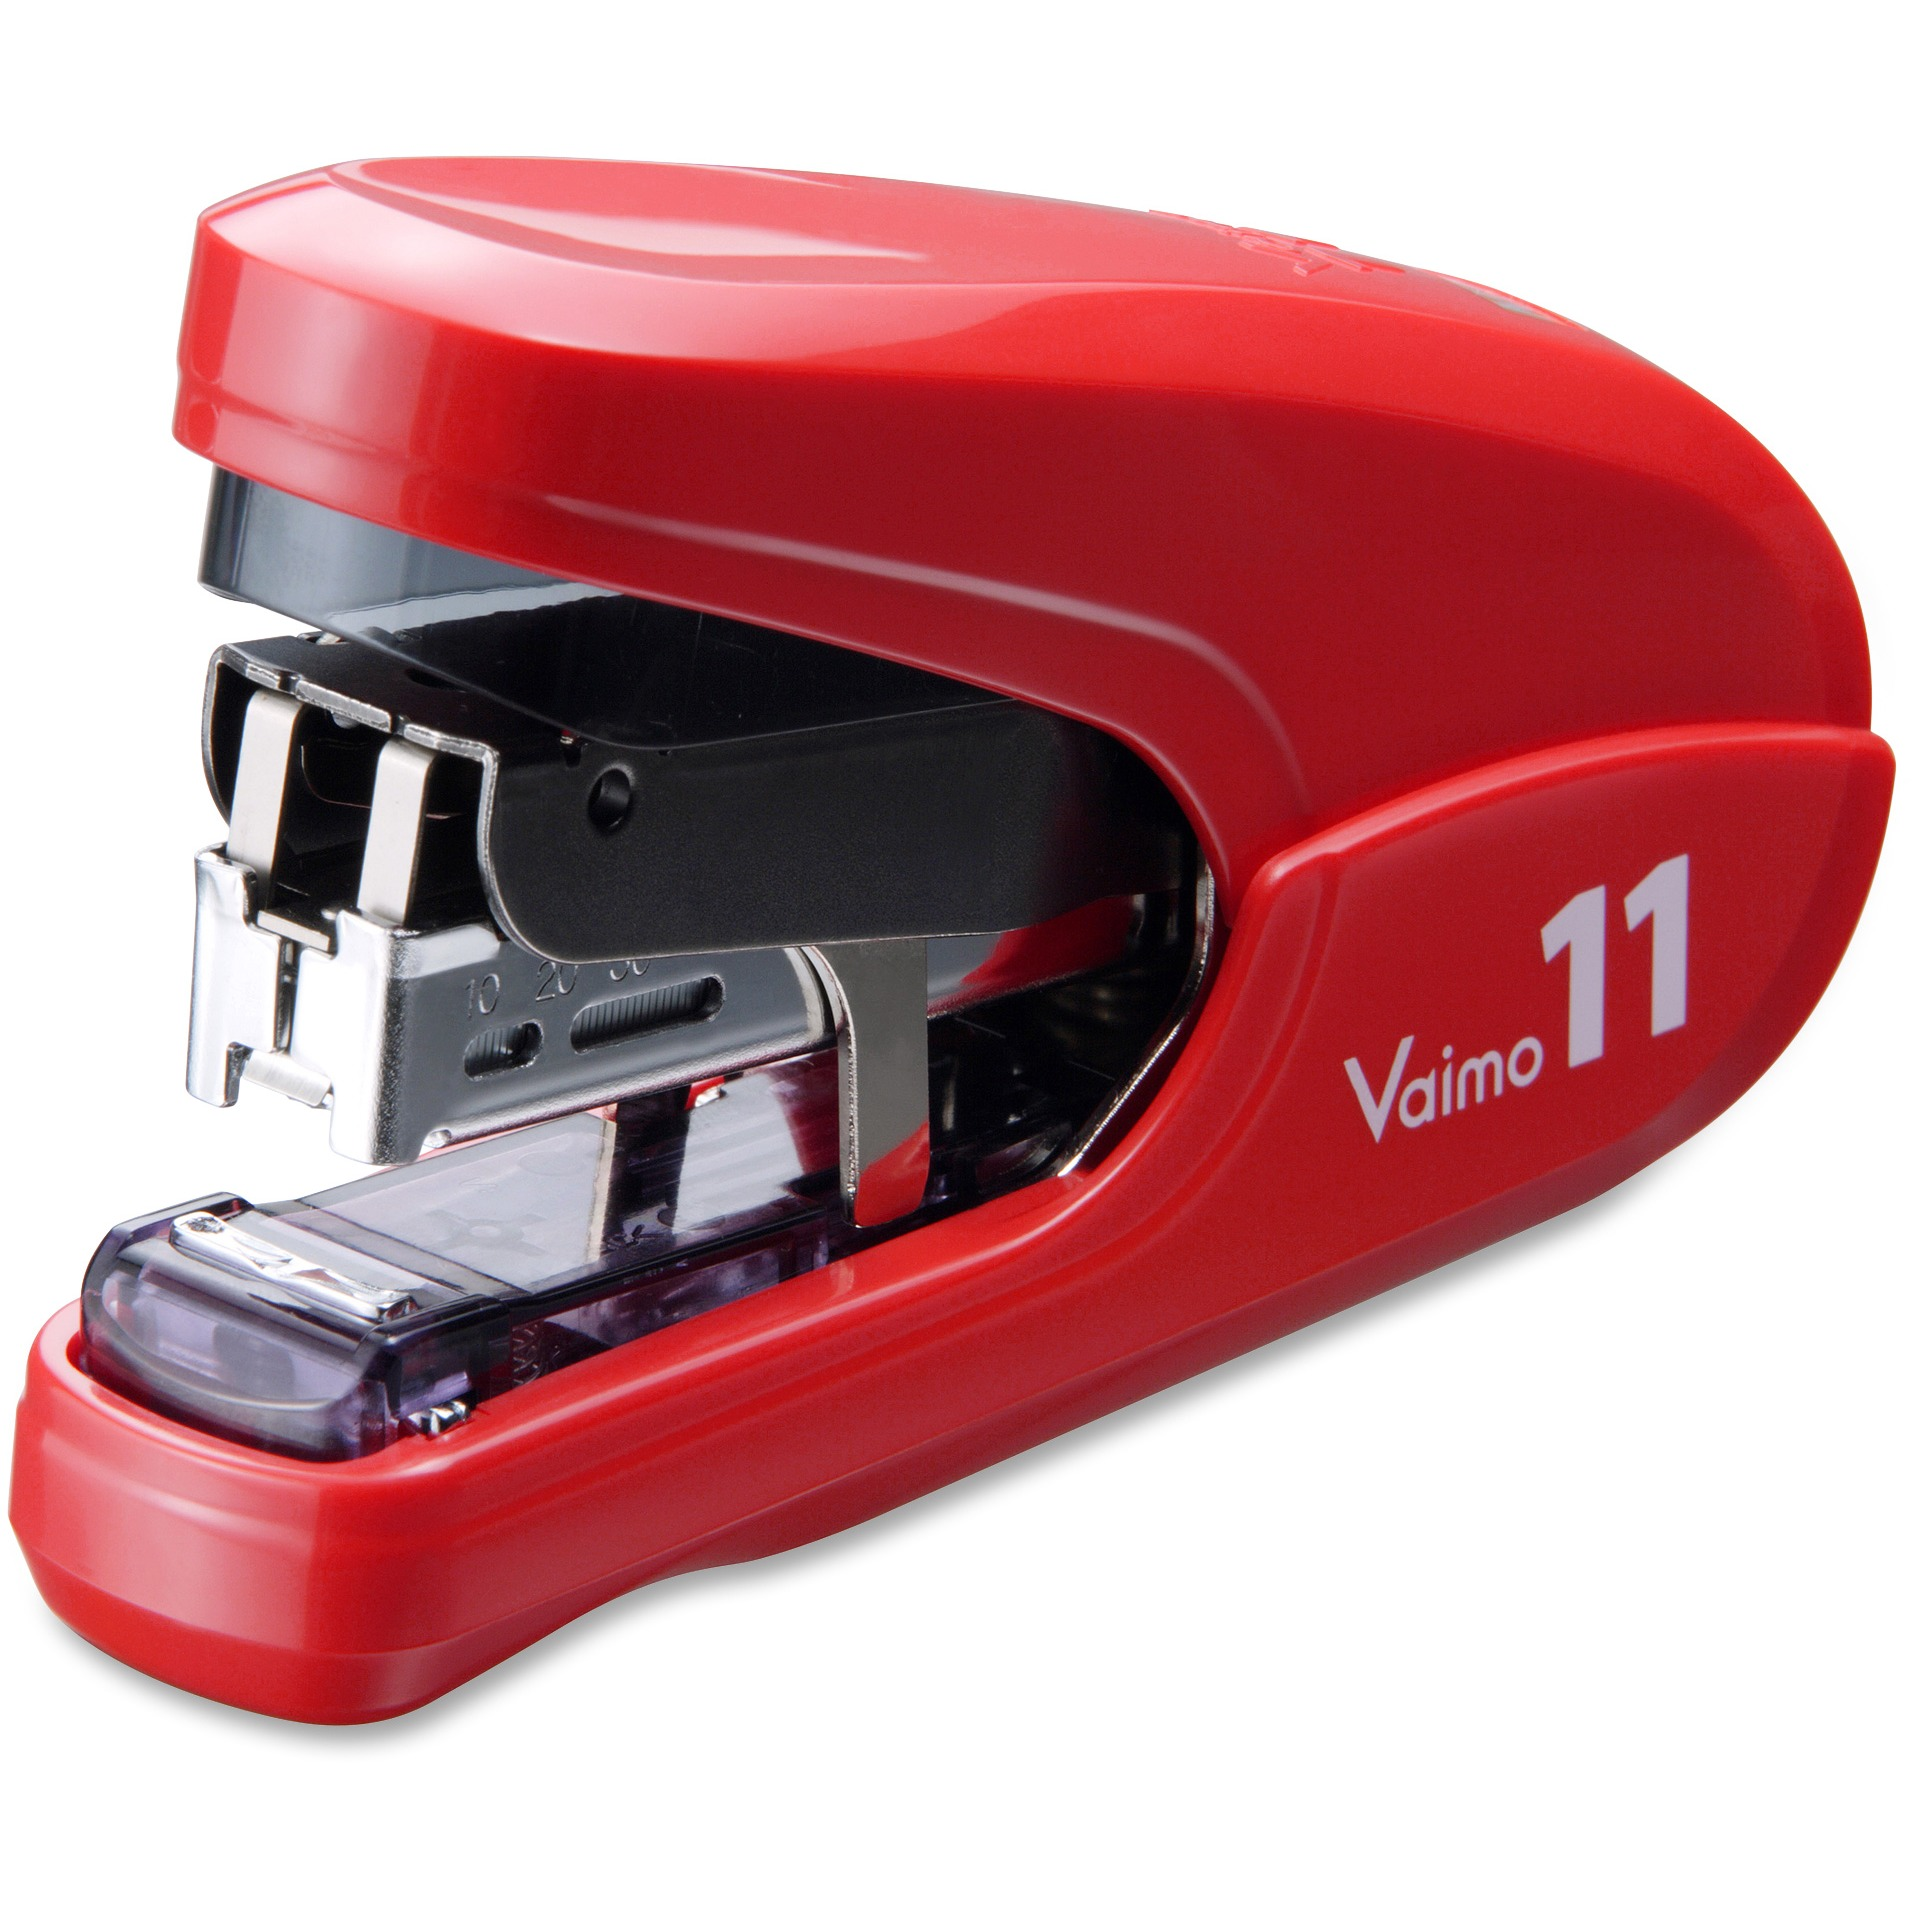 MAX Vaimo 11 Compact Stapler, Red